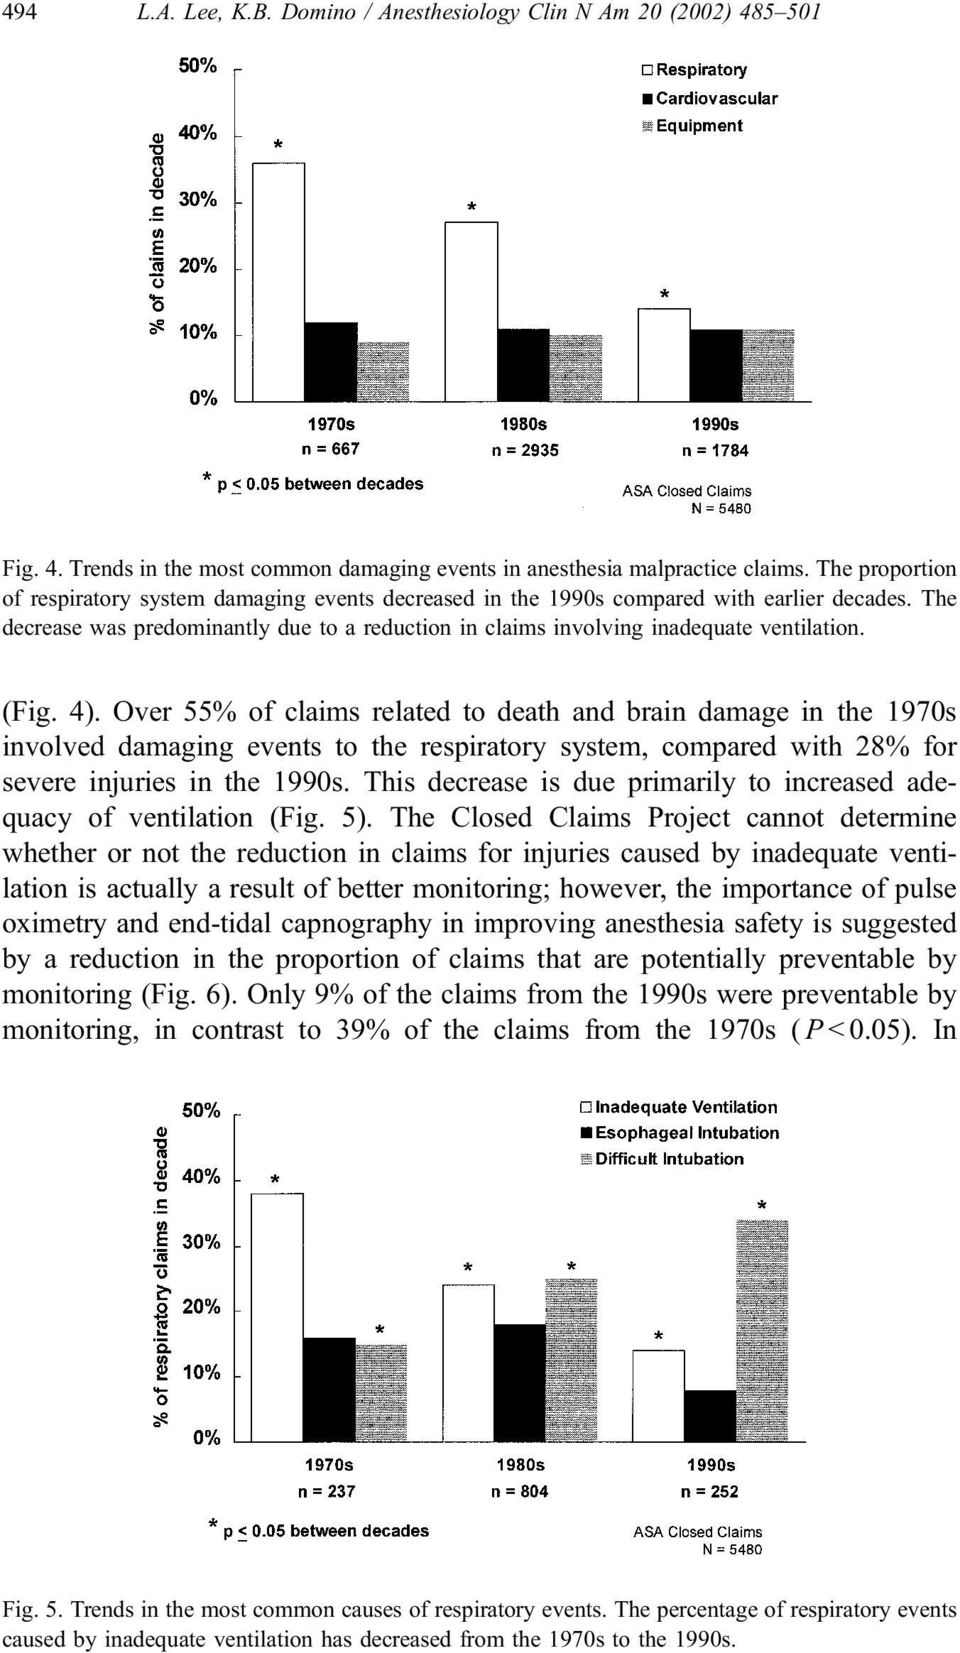 (Fig. 4). Over 55% of claims related to death and brain damage in the 1970s involved damaging events to the respiratory system, compared with 28% for severe injuries in the 1990s.